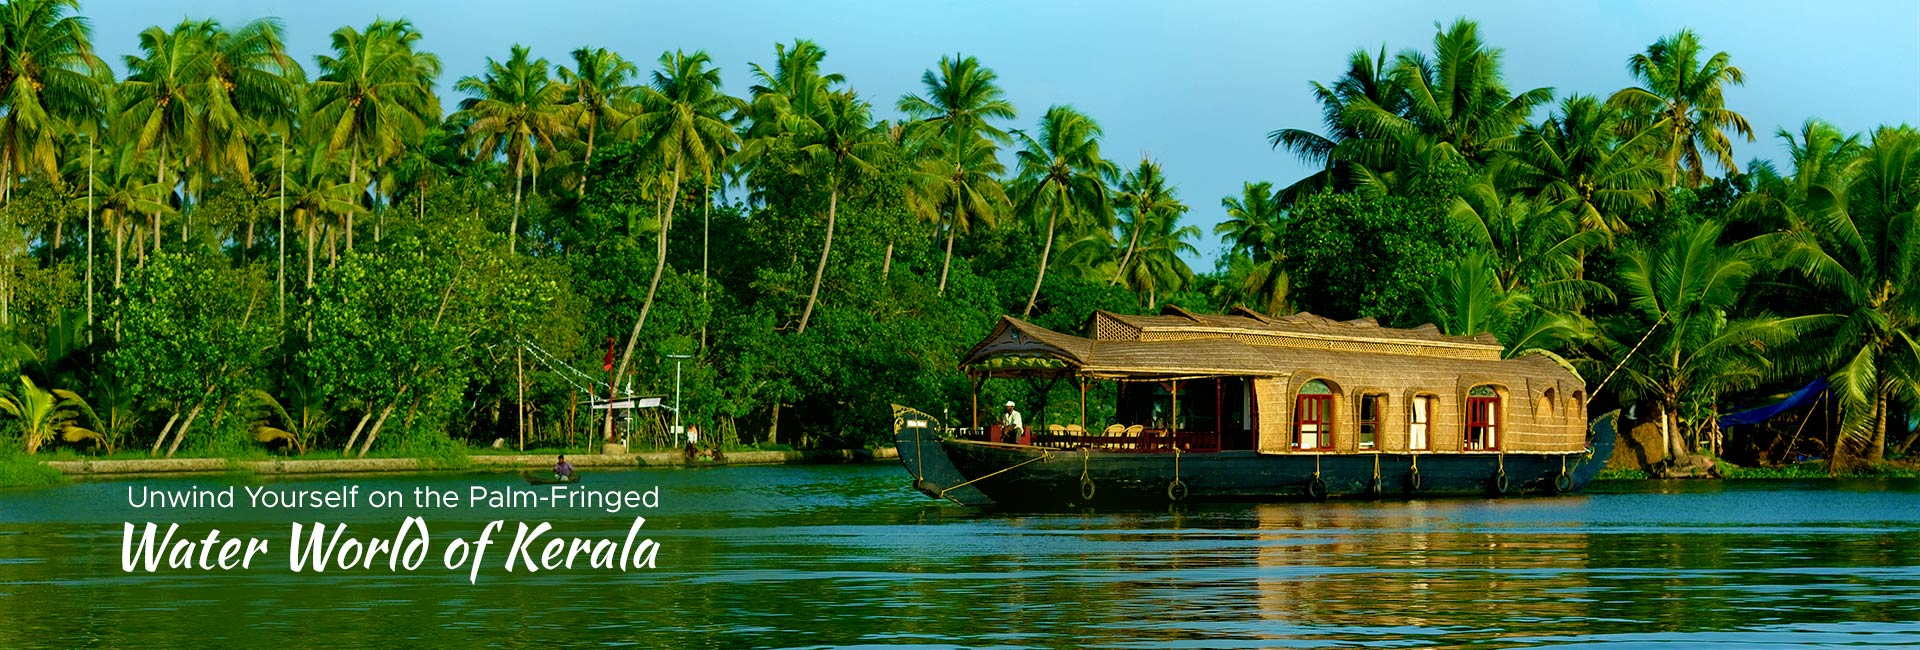 Unwind Yourself on the Palm-Fringed Water World of Kerala